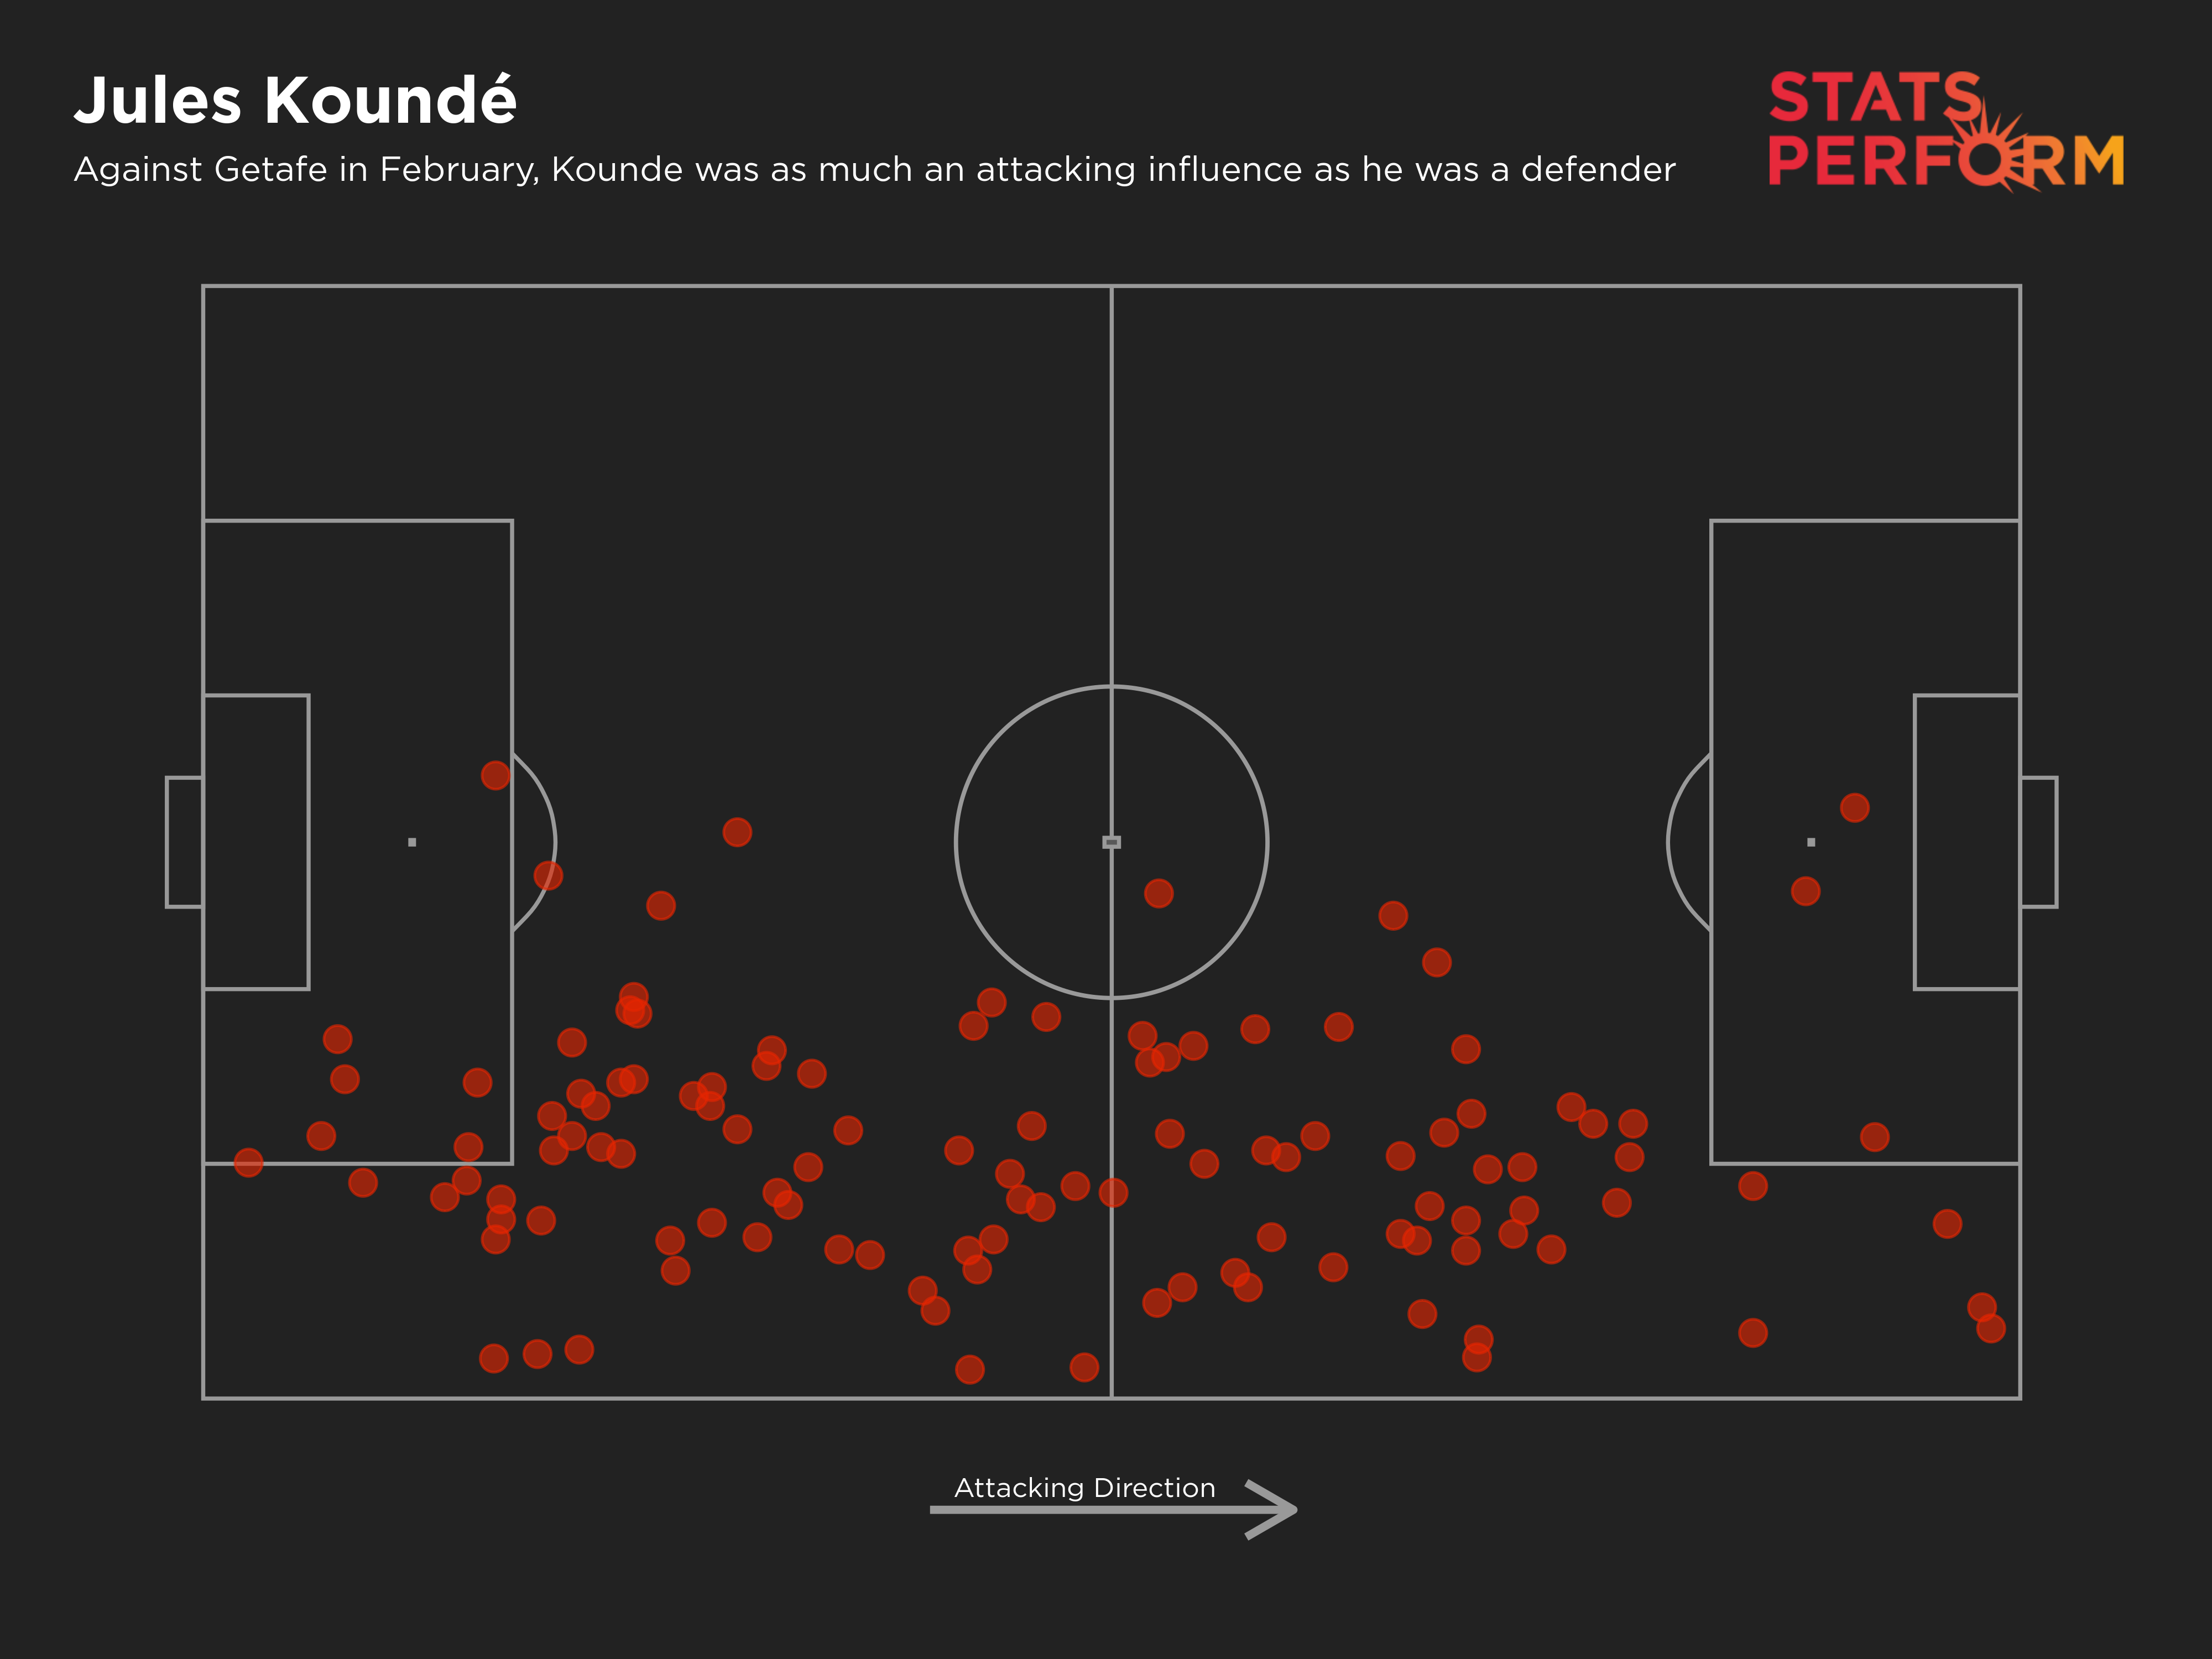 Jules Kounde's touch map against Getafe